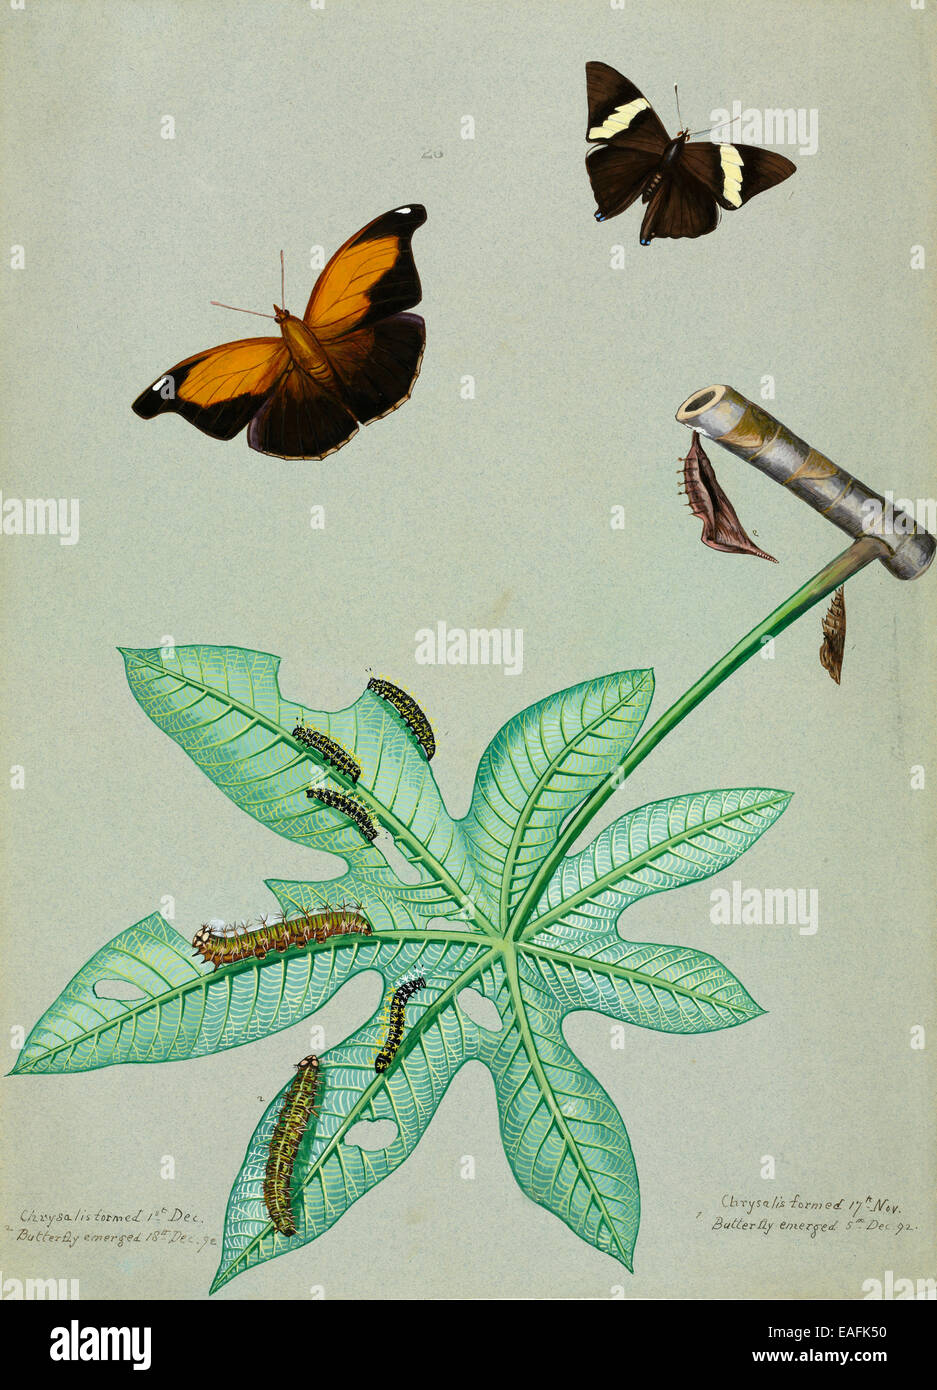 Colobura dirce, Mosaic or Zebra Mosaic and Historis odius, Stinky Leafwing with caterpillars of the same species - Stock Image